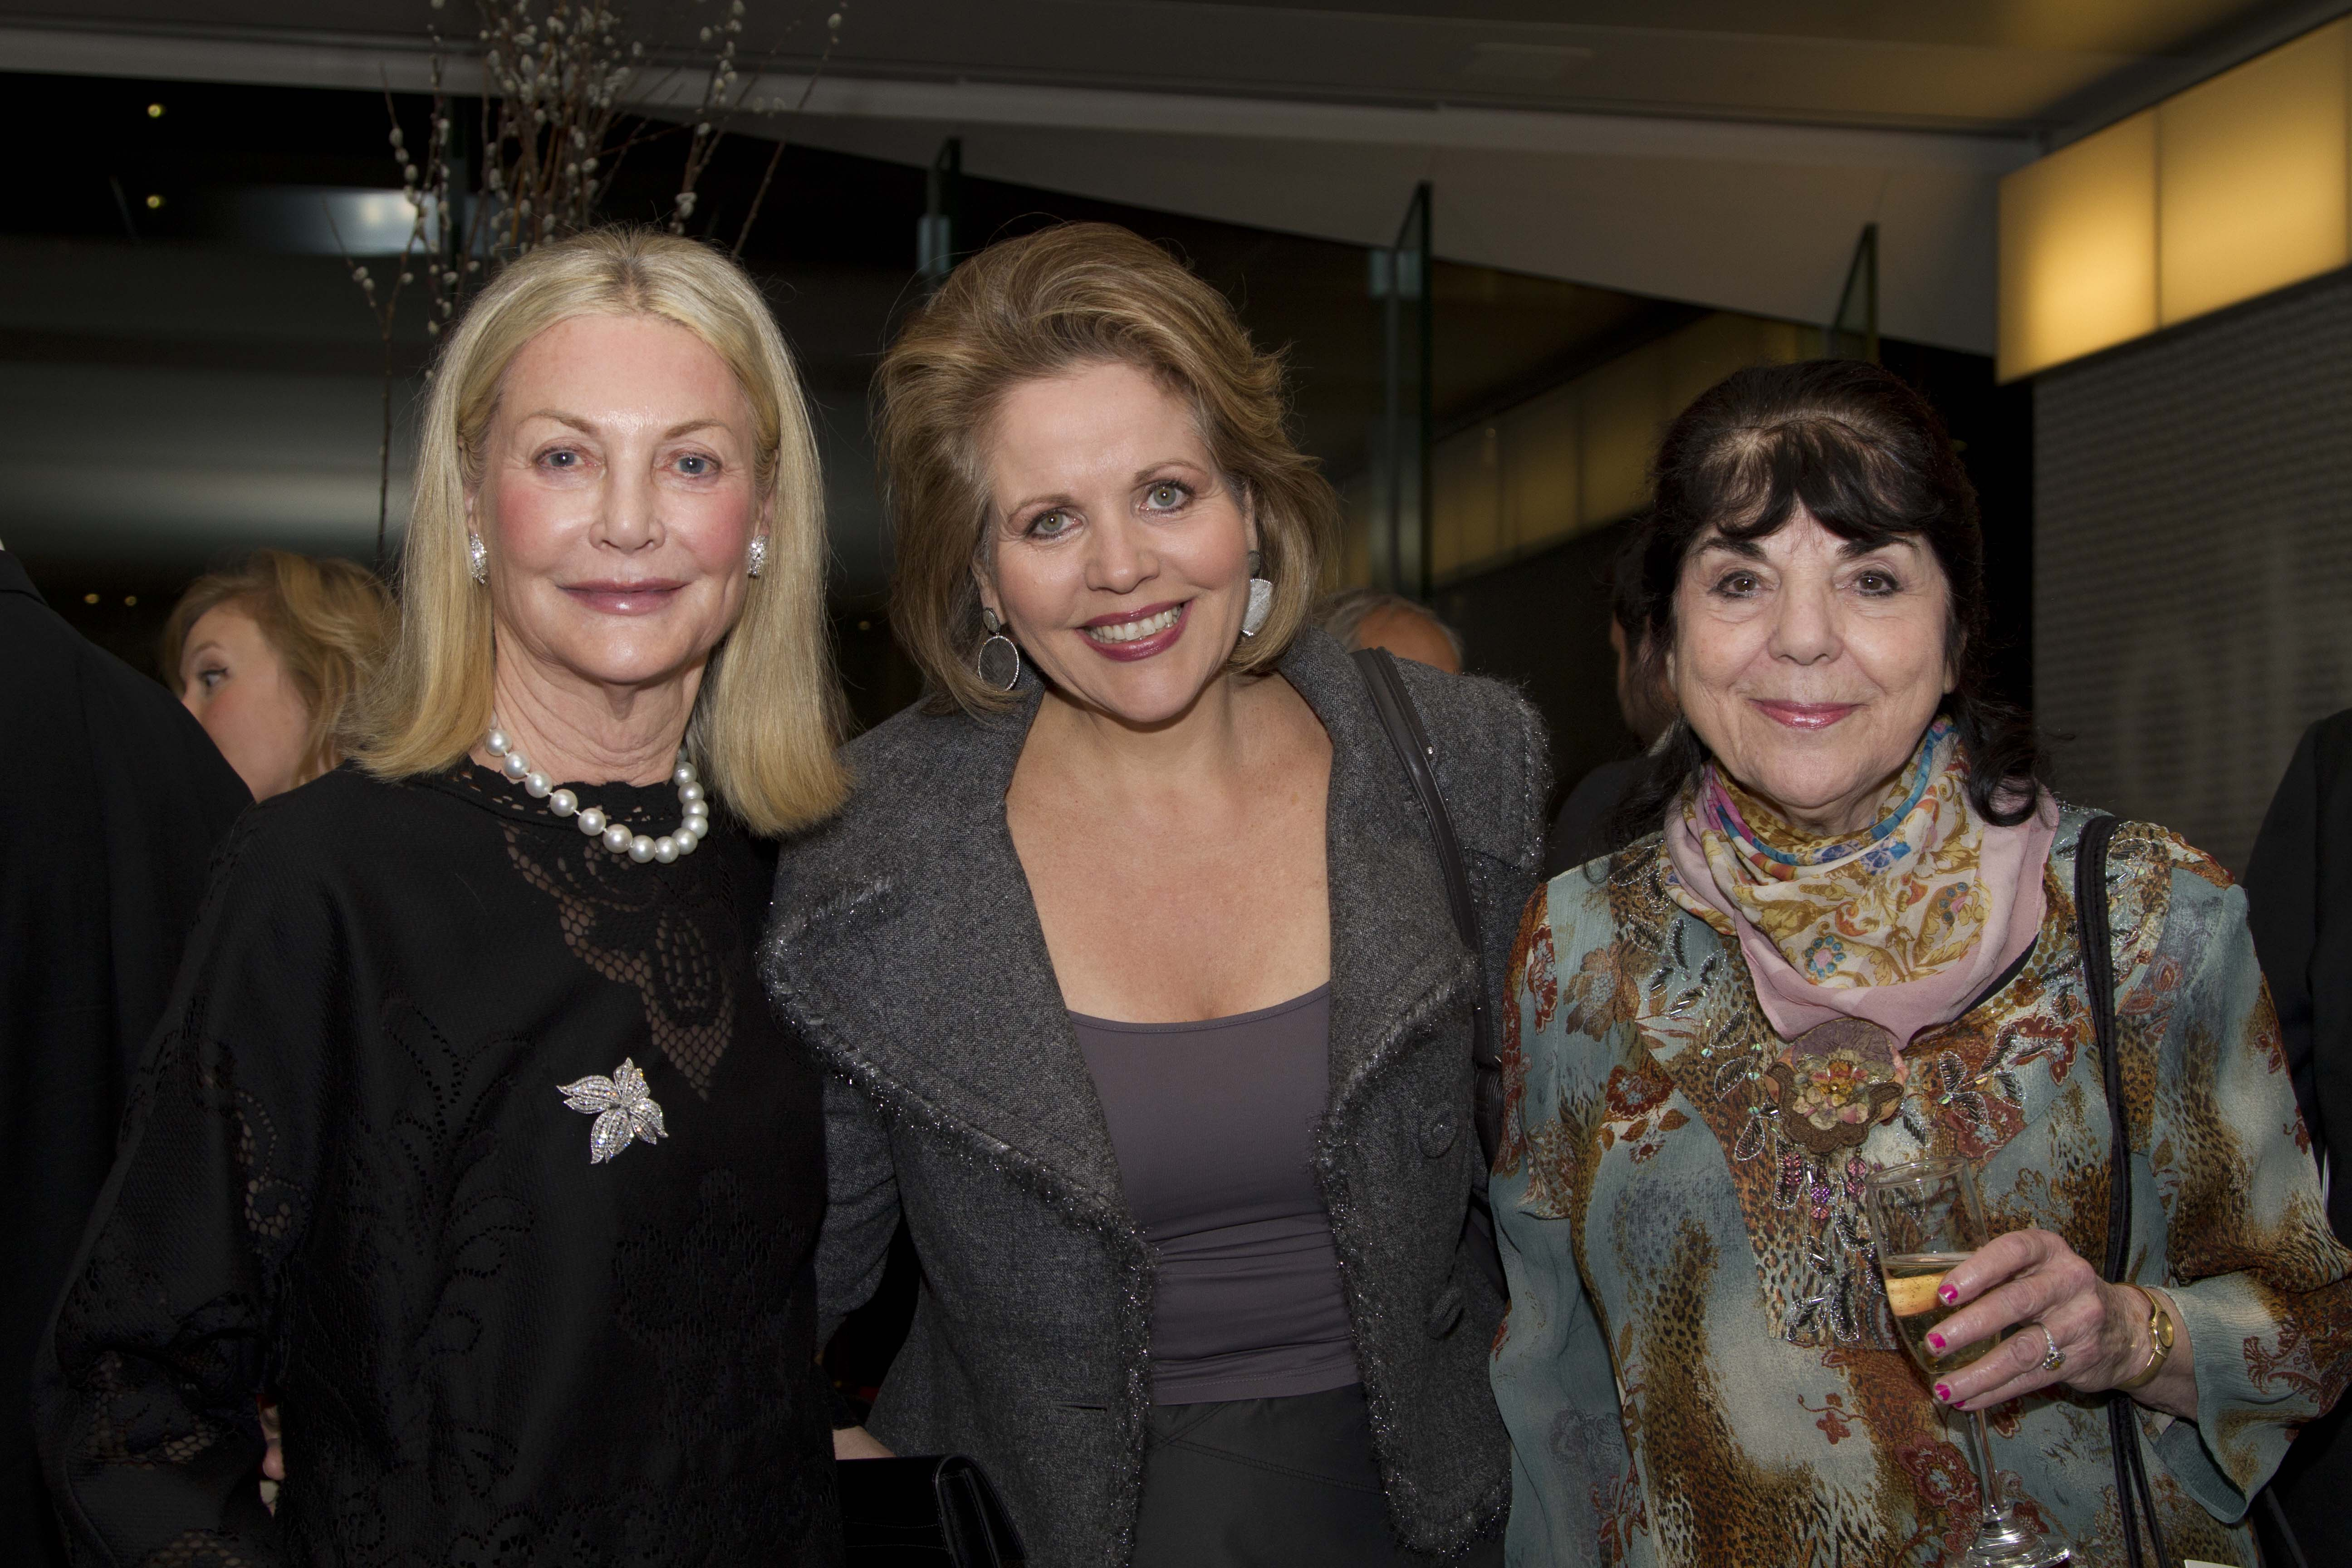 Yveta Synek Graff, Renée Fleming, and Eve Queler